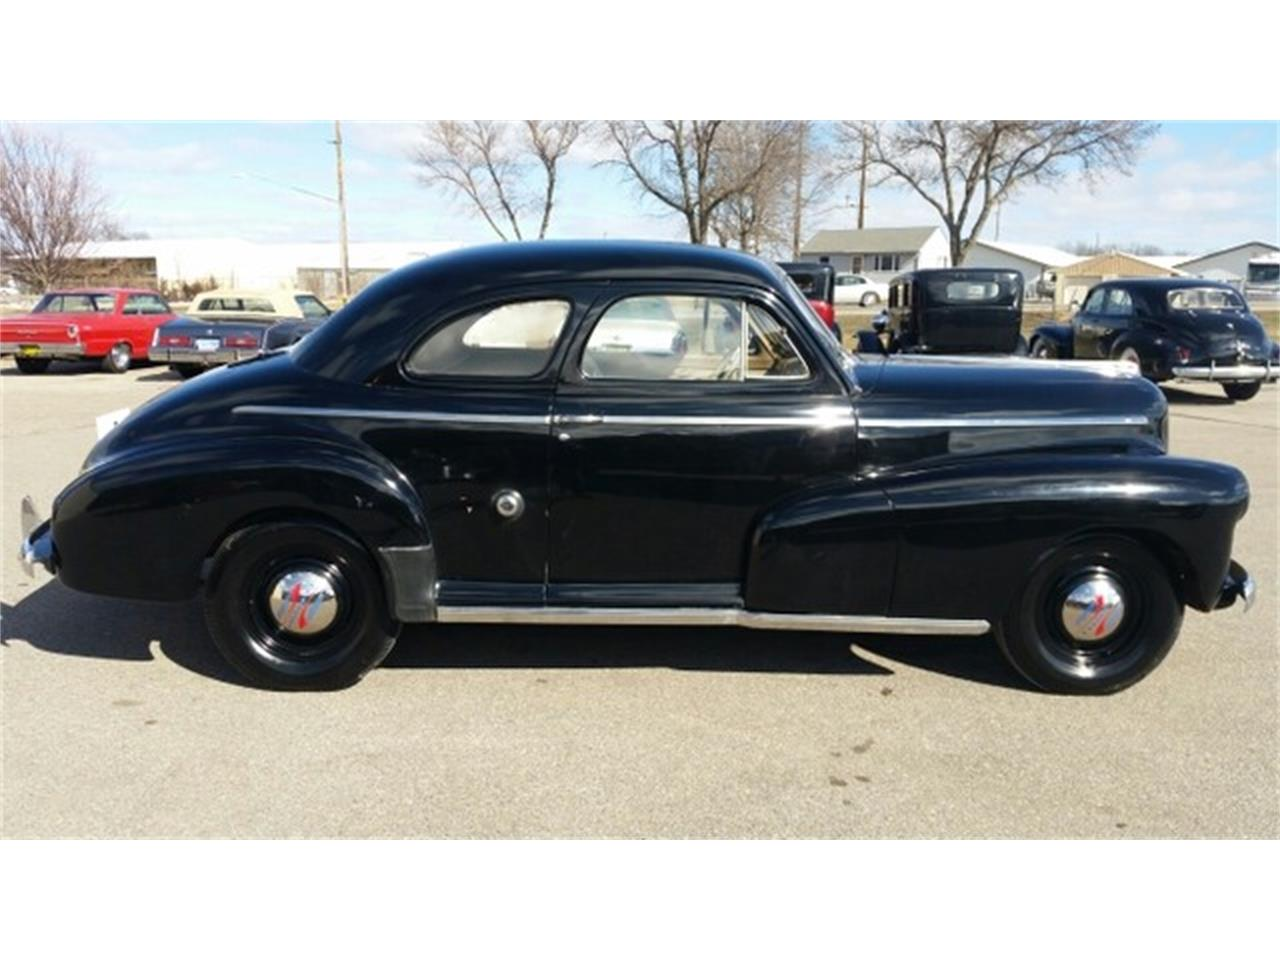 For Sale: 1942 Chevrolet Business Coupe in Mankato, Minnesota